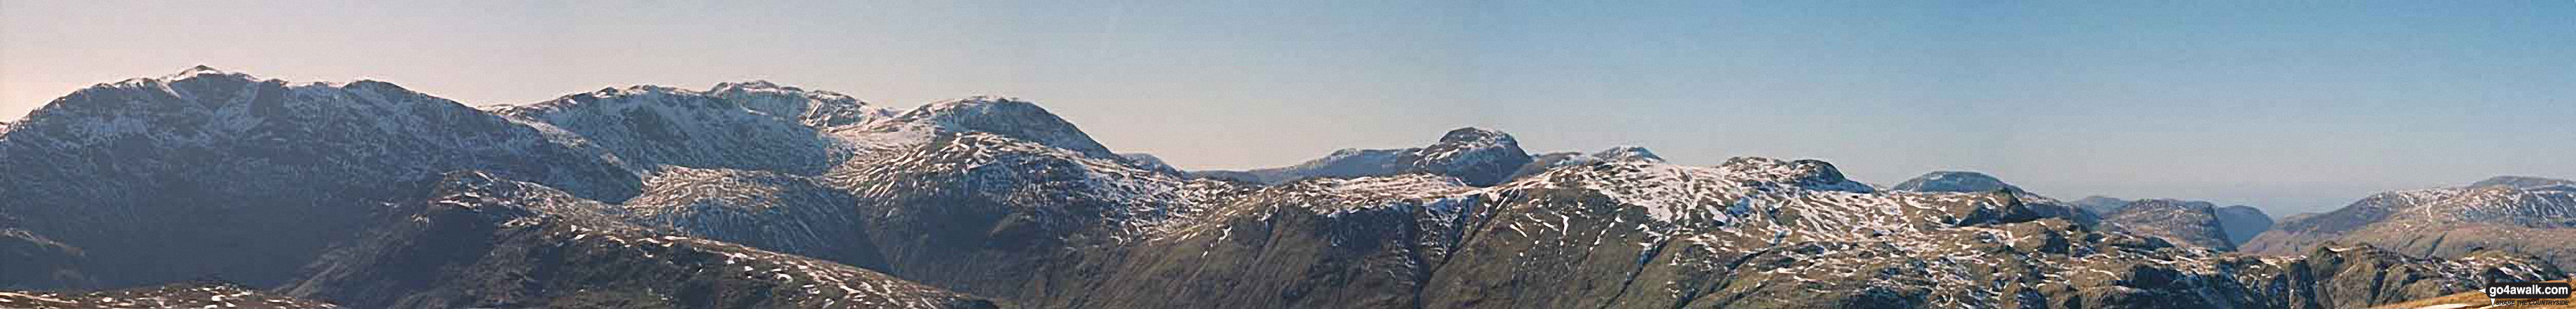 *Bowfell, Esk Pike and (the end of) The Scafell Massif from Langdale